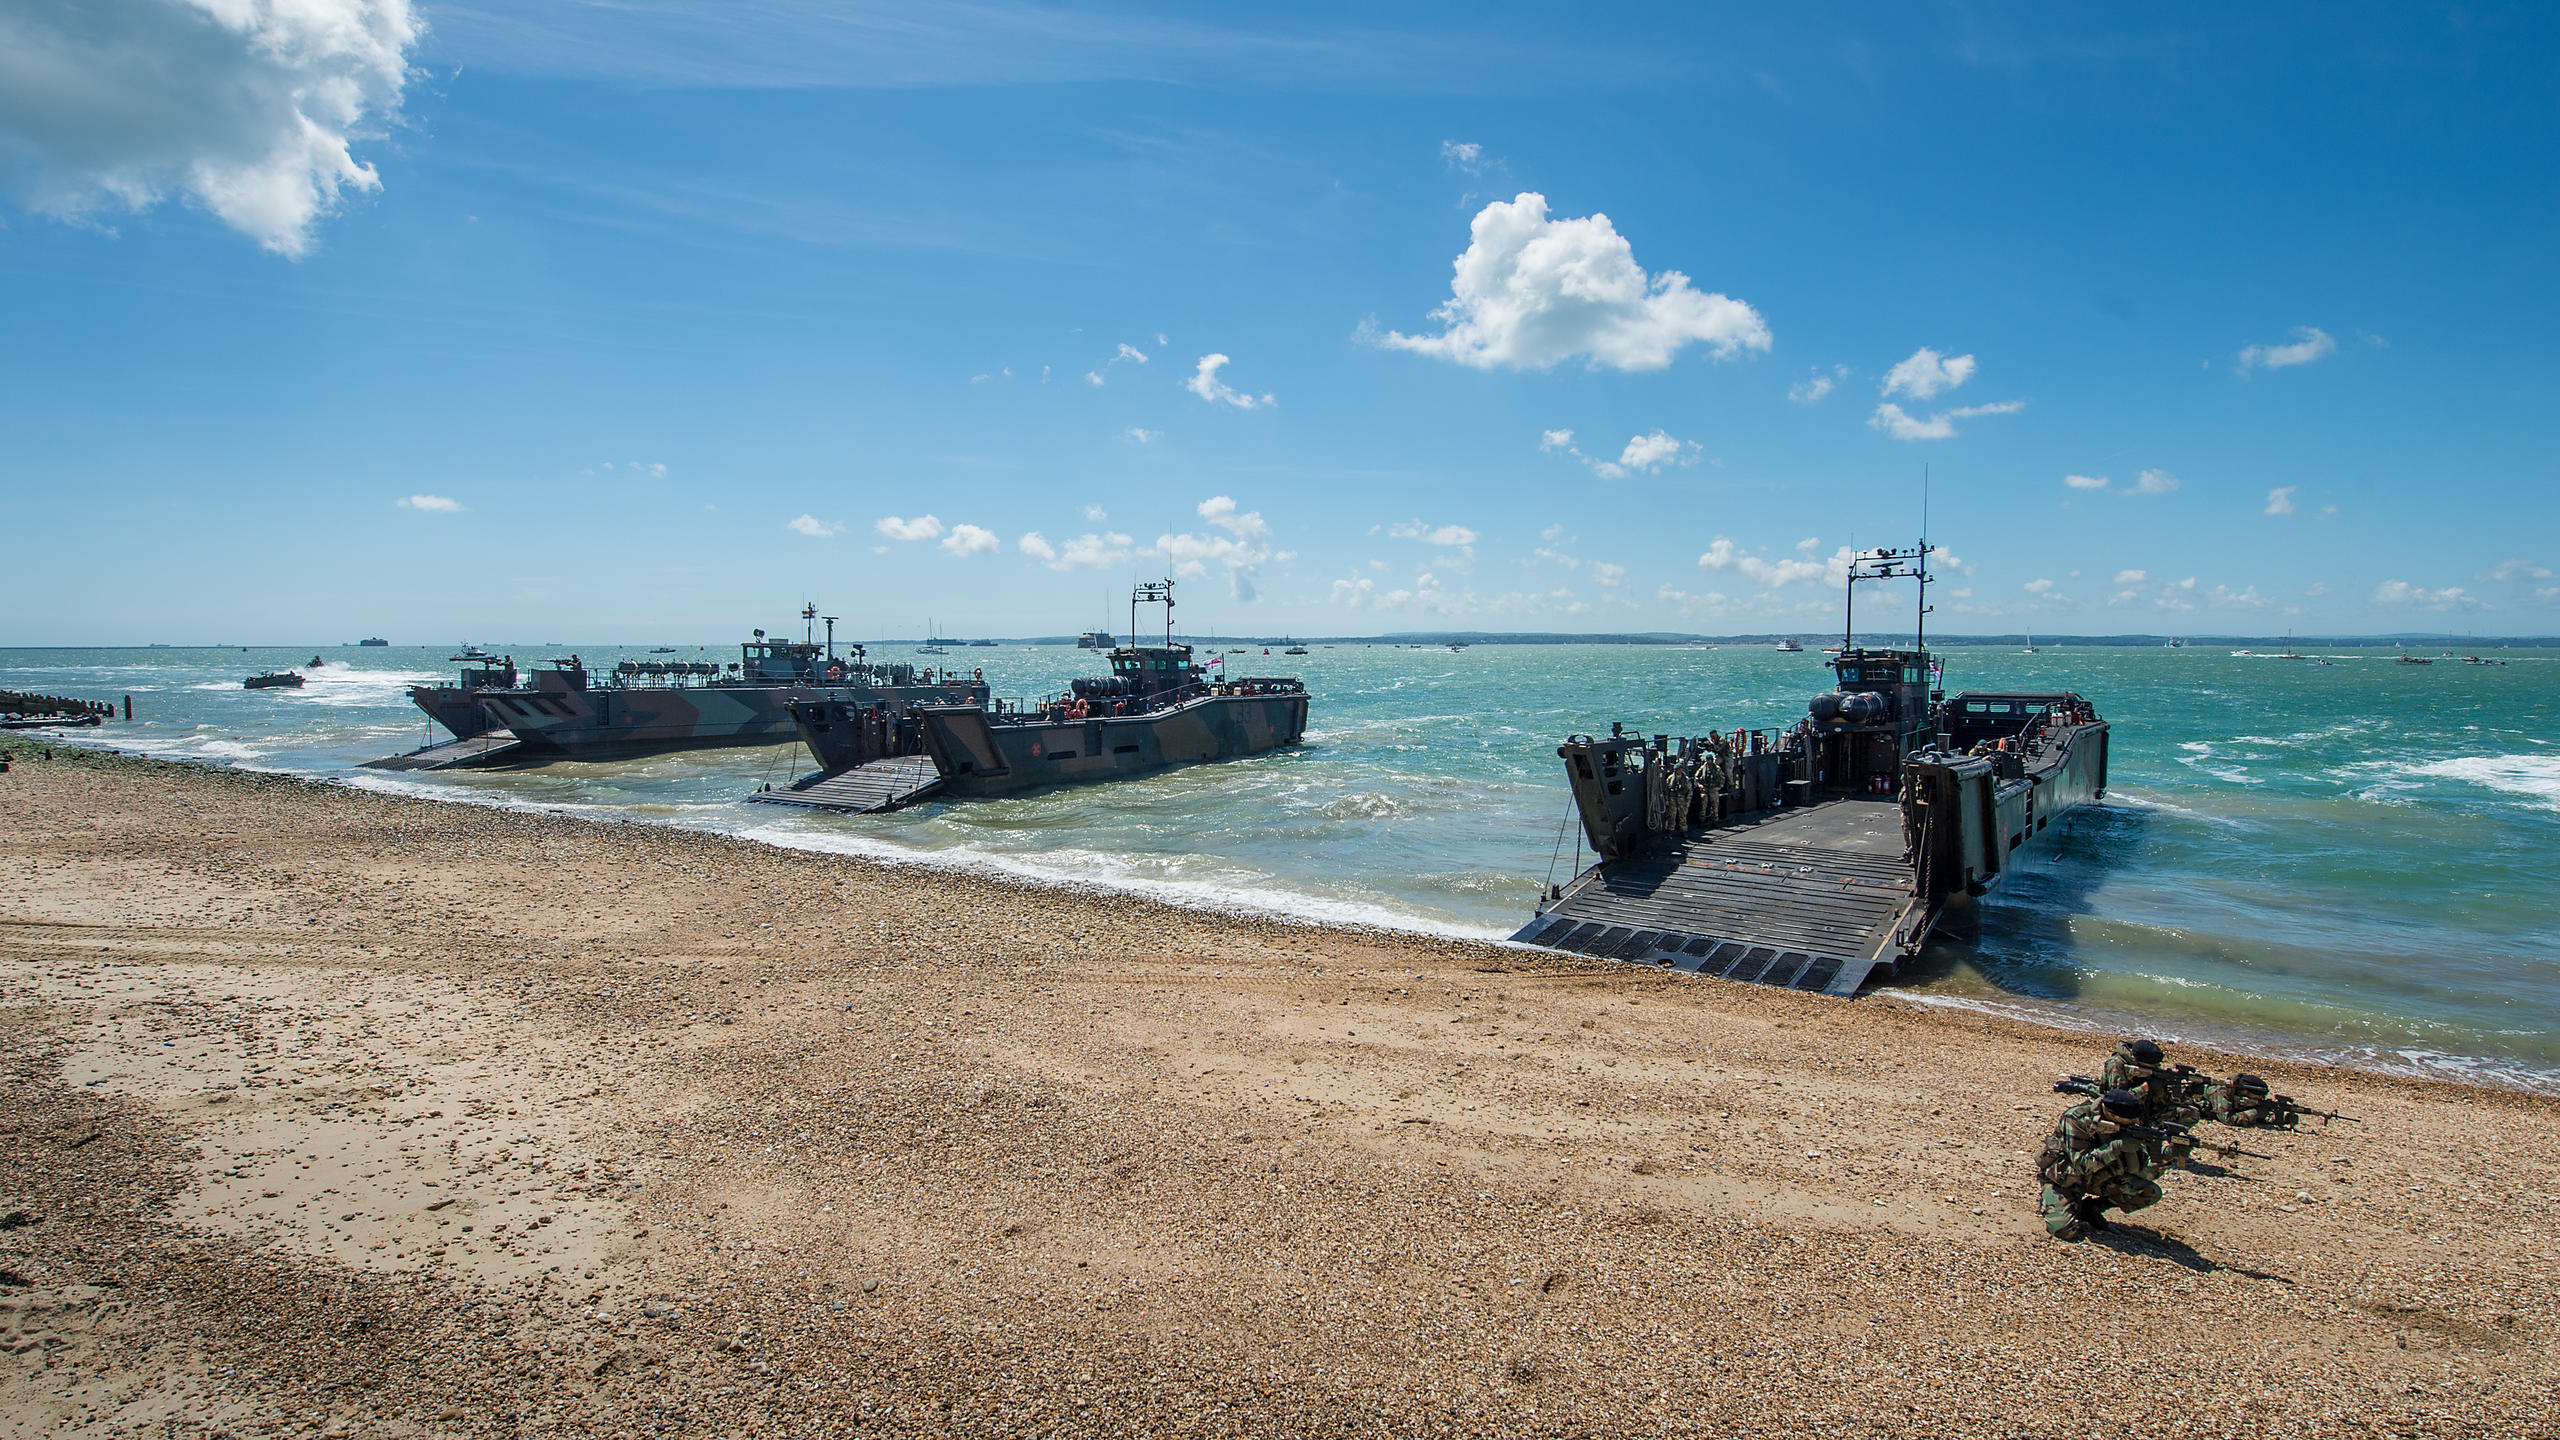 D-Day Landings Re-enactment on Southsea Beach During 70th Anniversary Commemorations